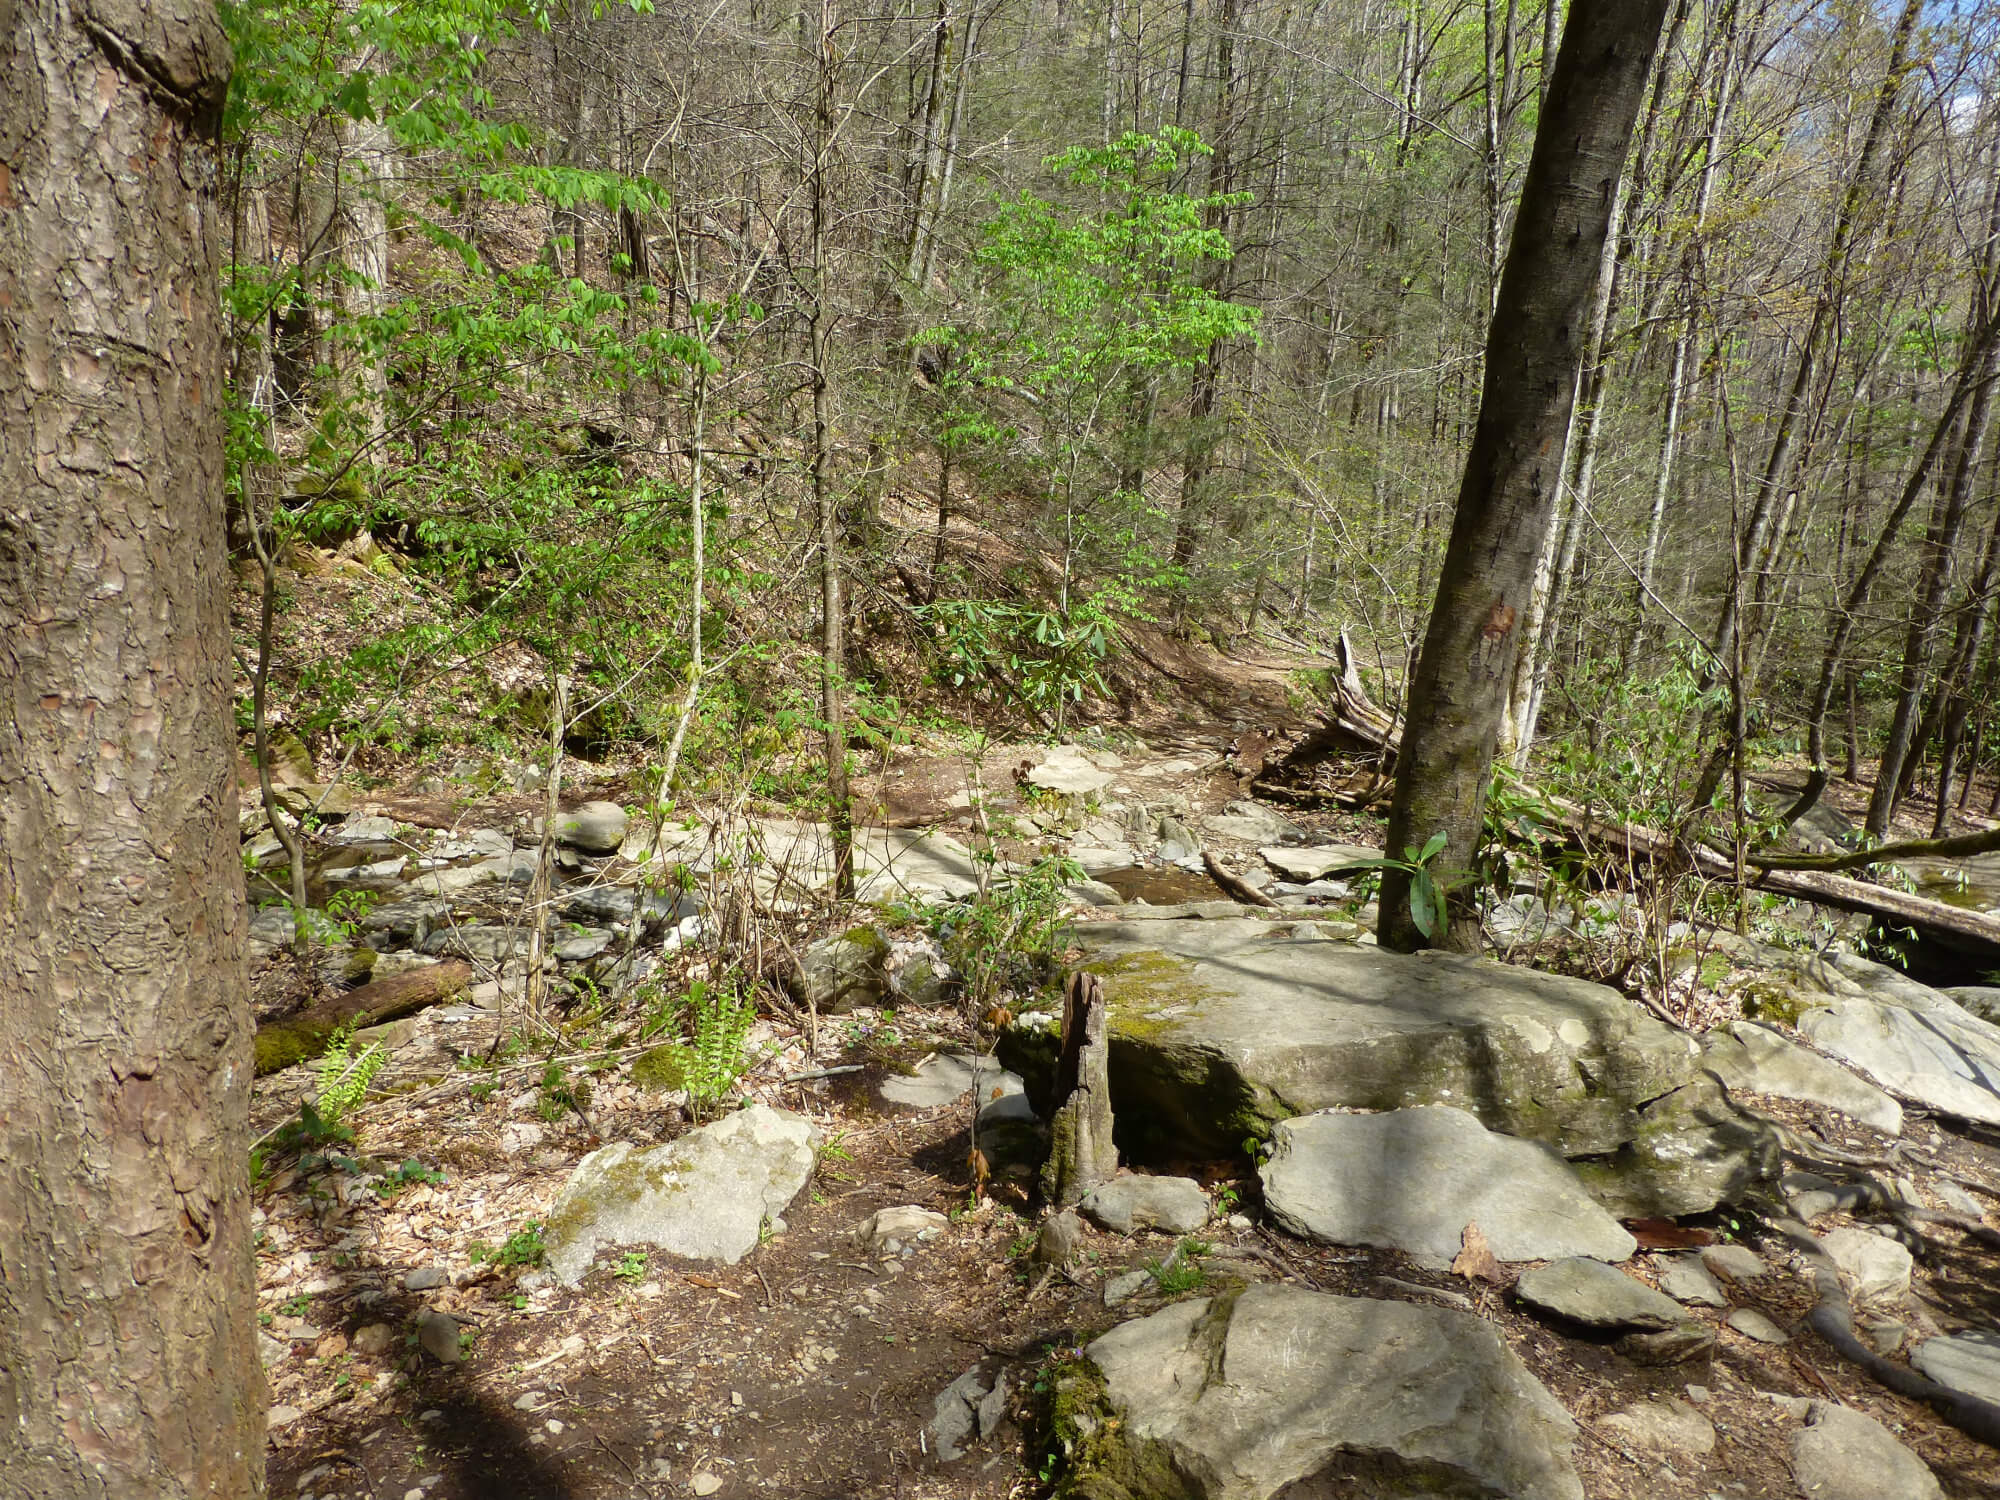 A forest hiking trail surrounded by boulders and trees